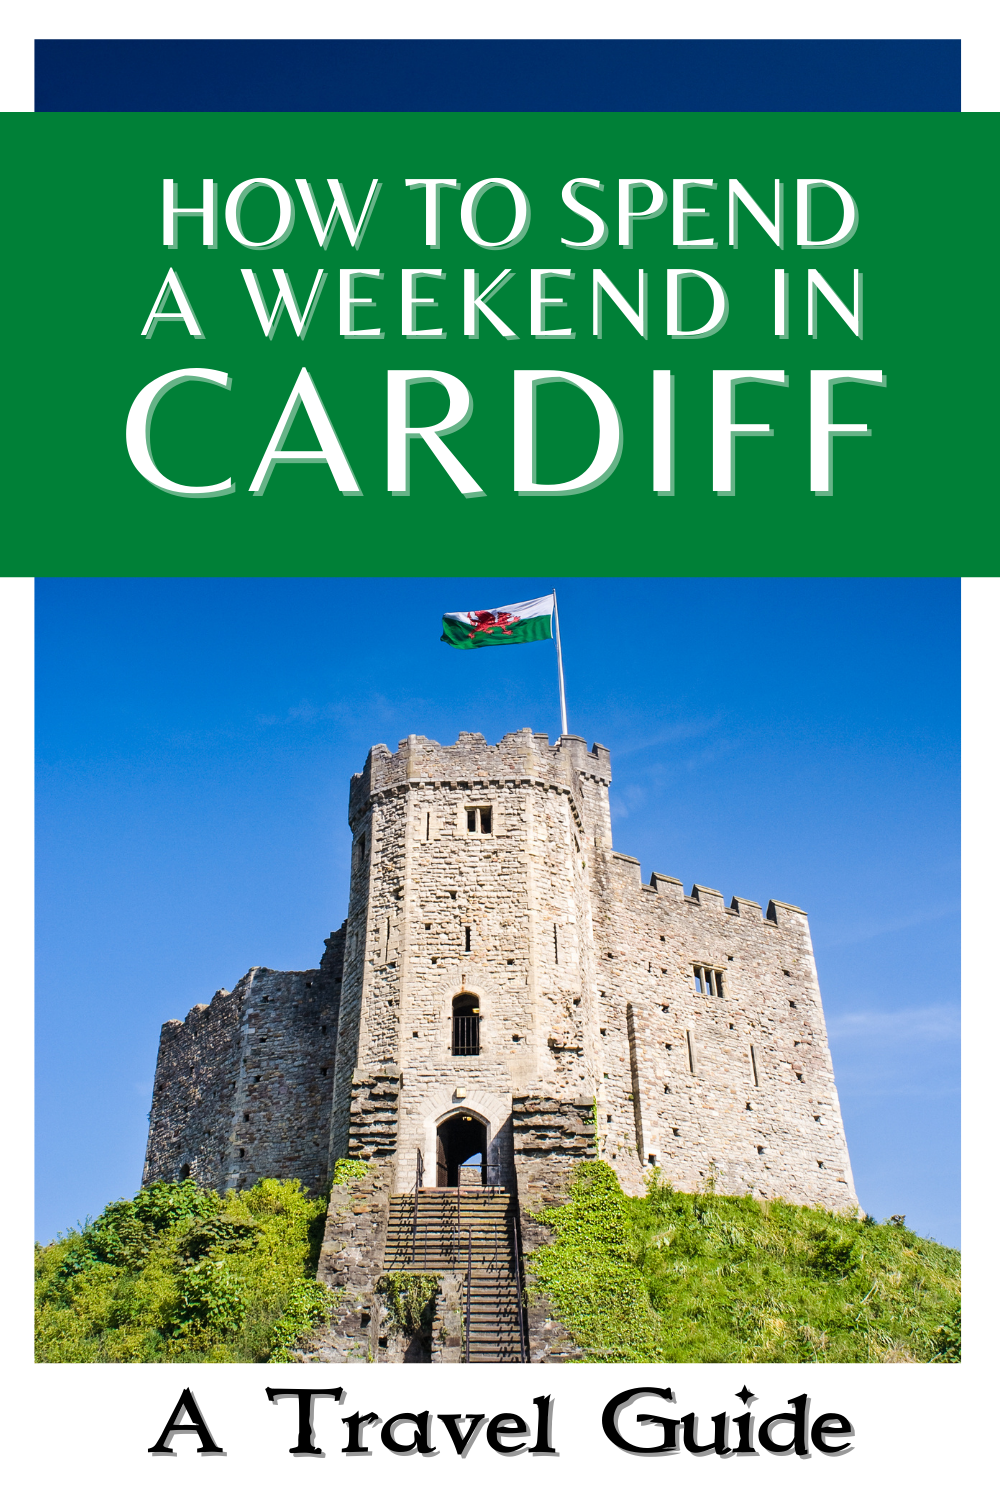 Find out how to make the most of a weekend in Cardiff, culture, history, shopping, food and more!